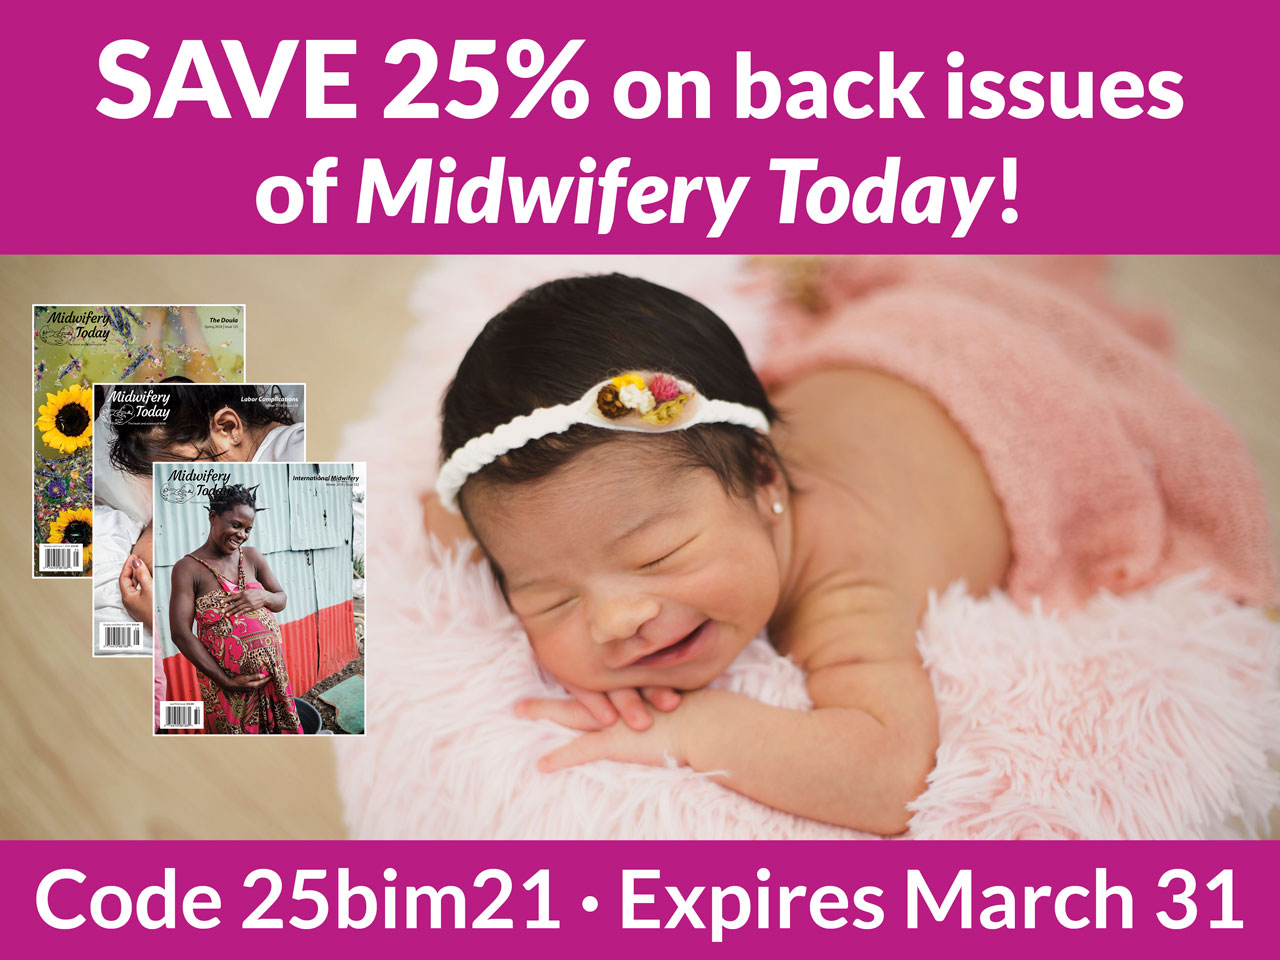 Save 25% on back issues